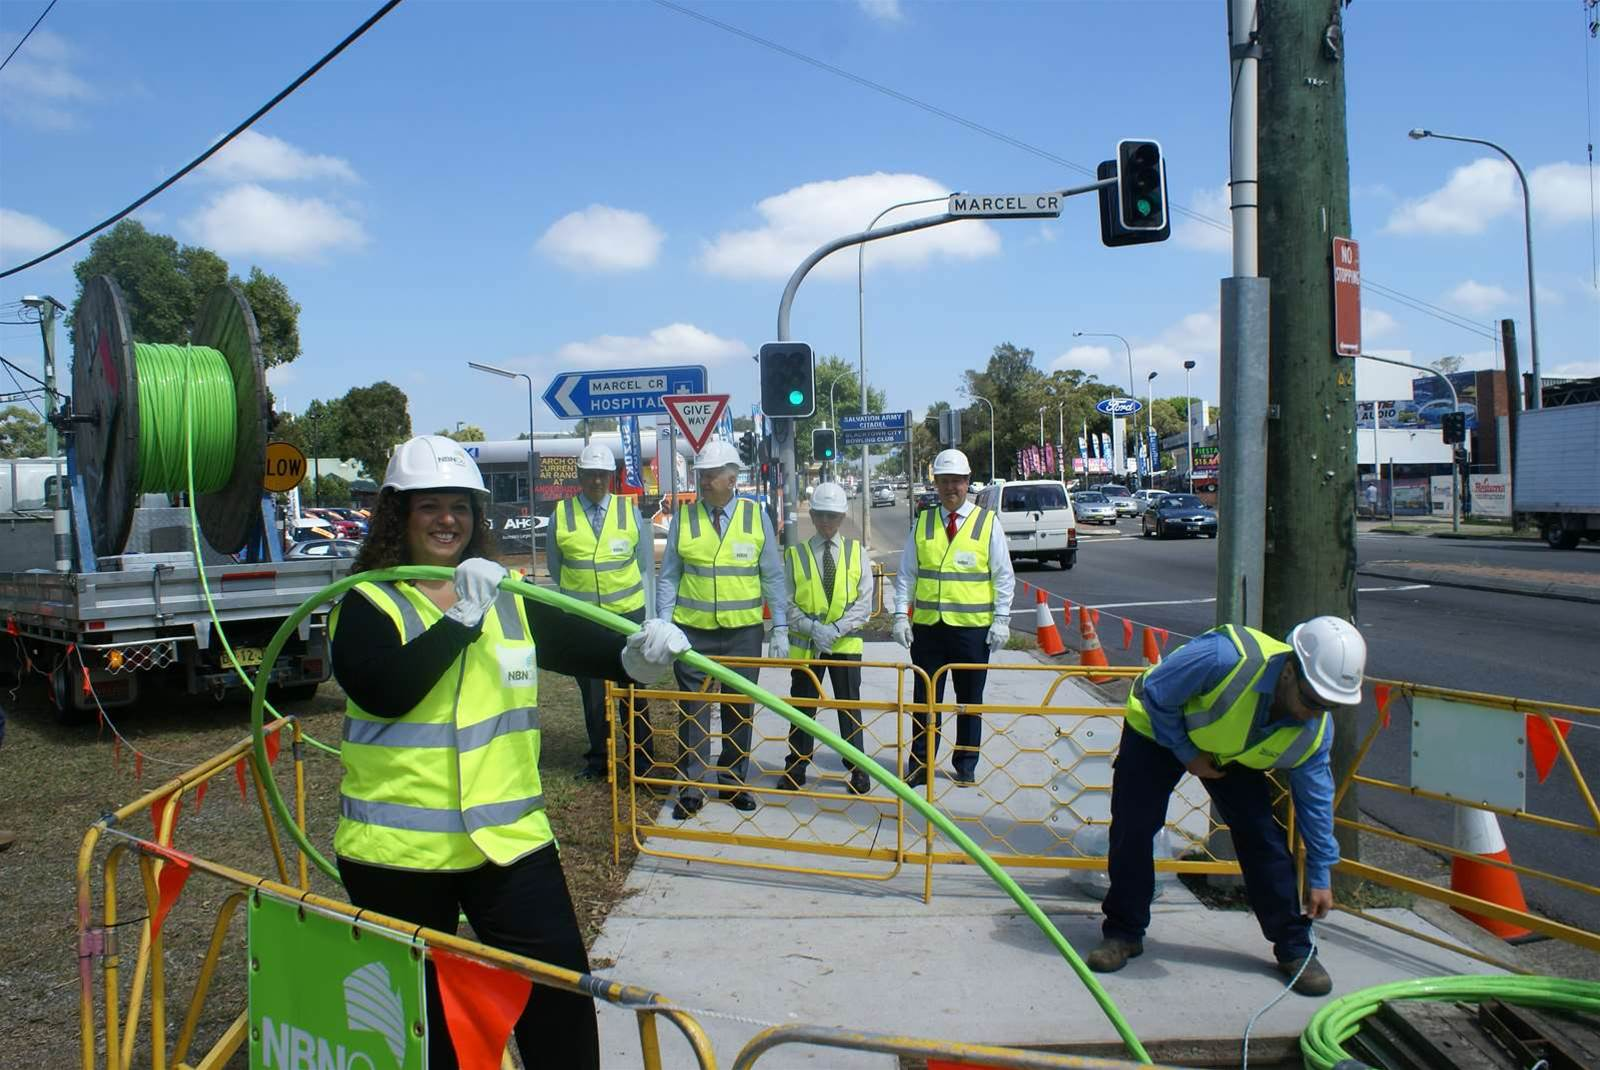 NBN lands in Western Sydney